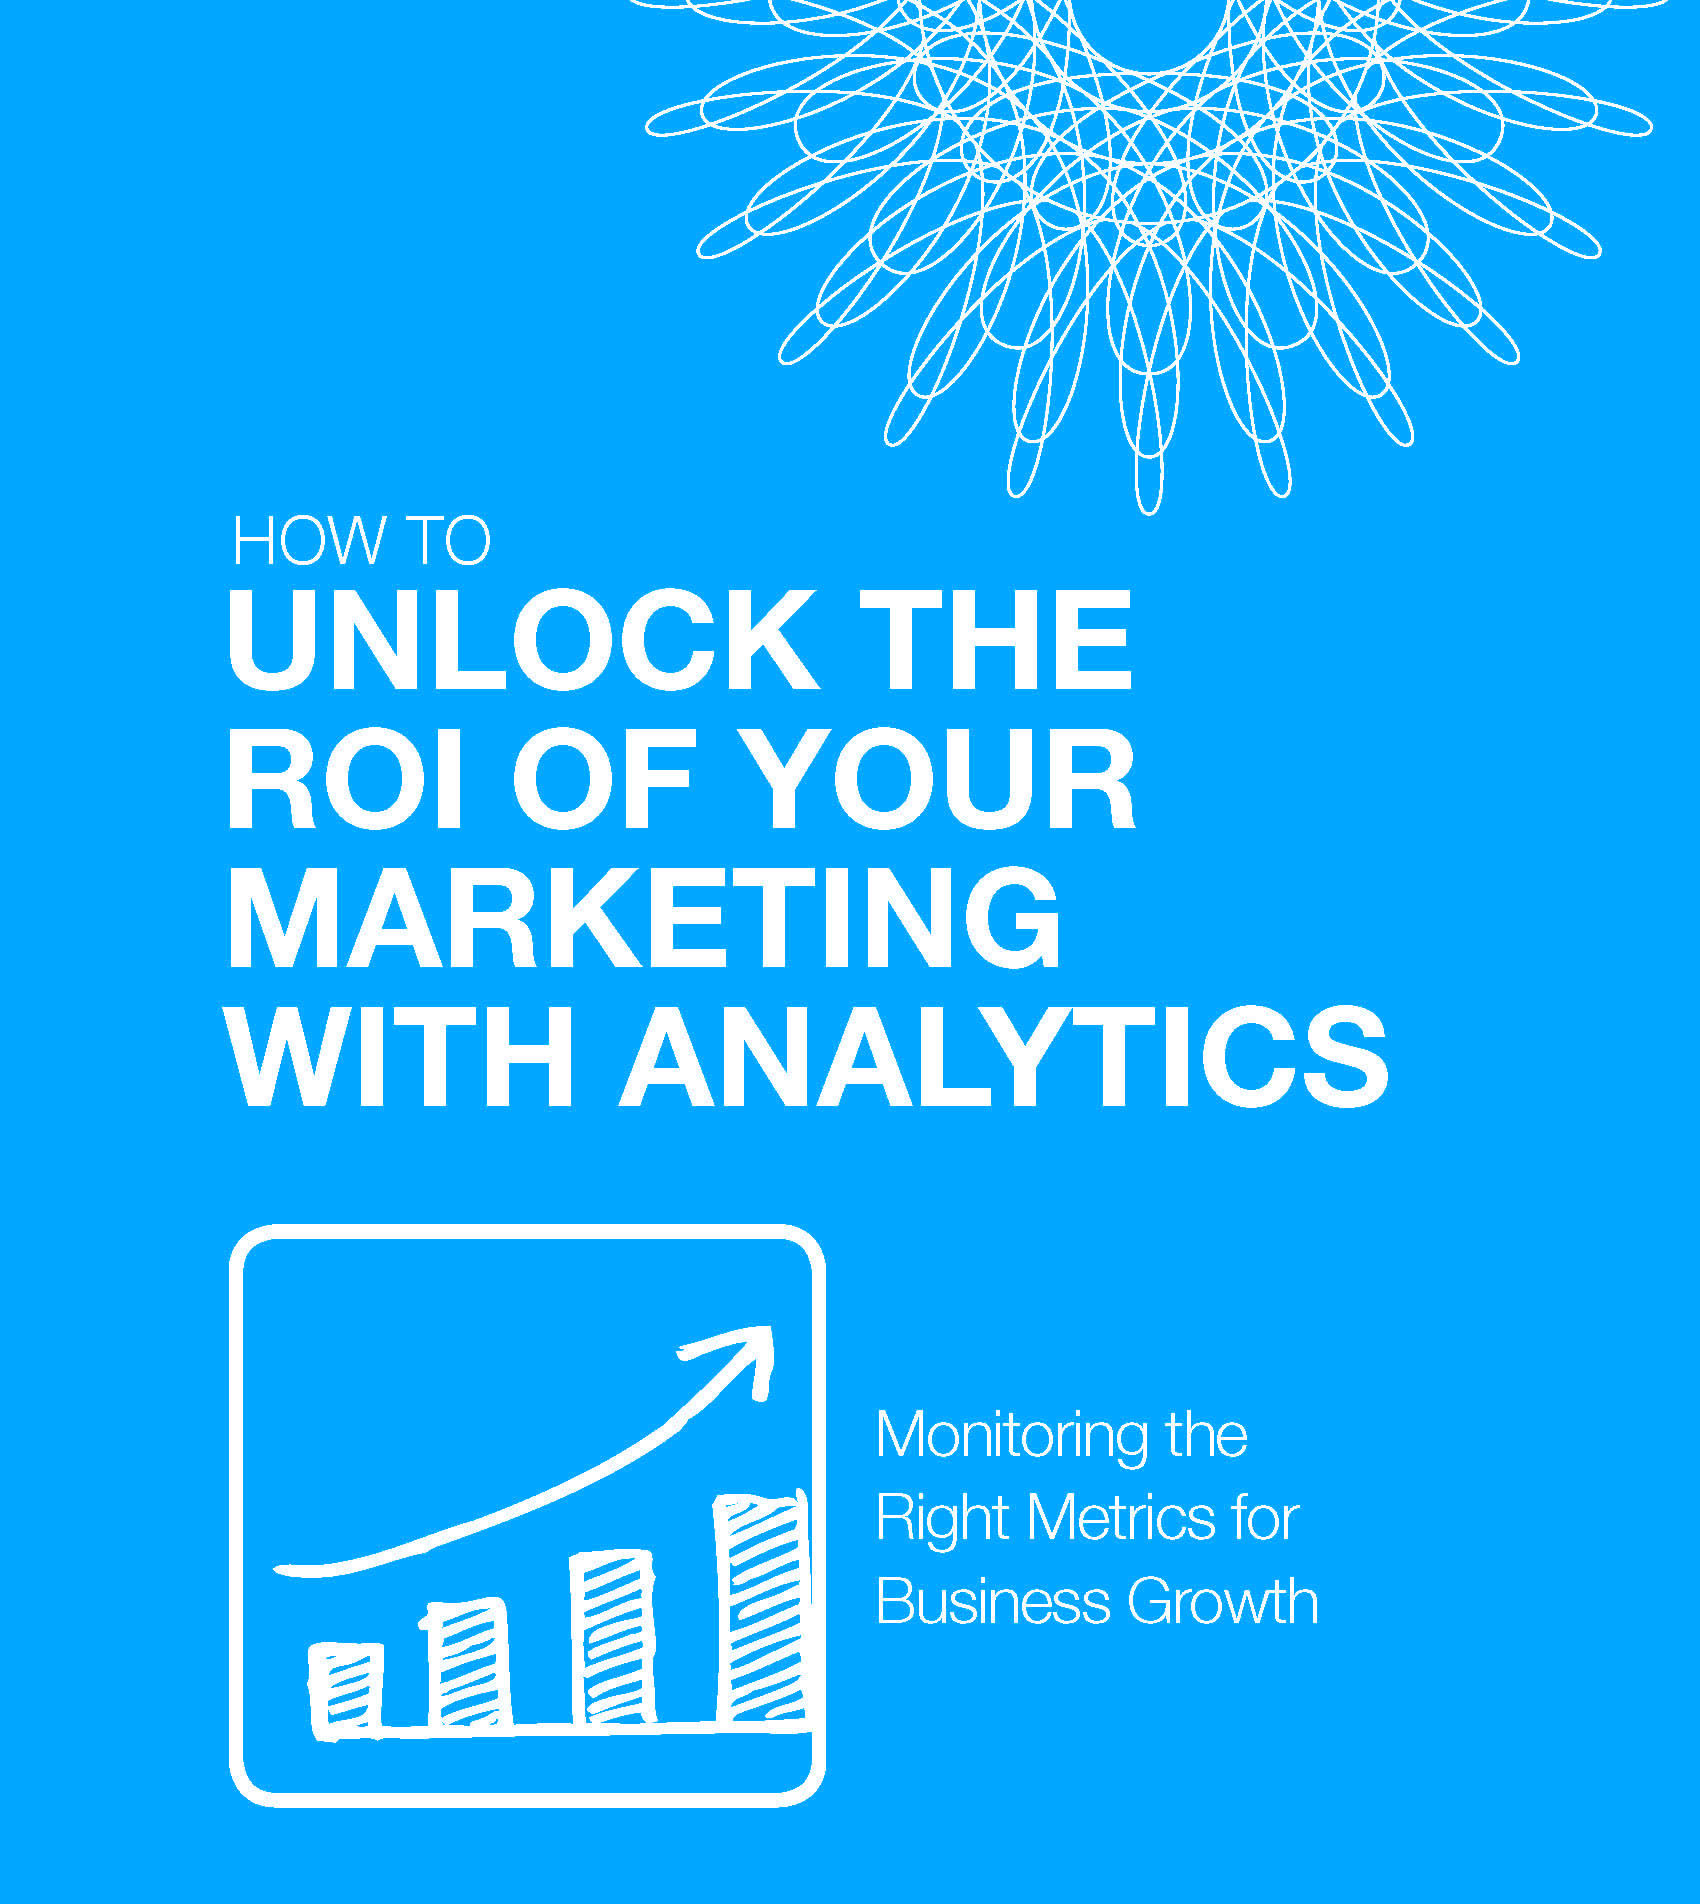 Partner_How_to_Unlock_the_ROI_of_Your_Marketing_with_Analytics_Rev_